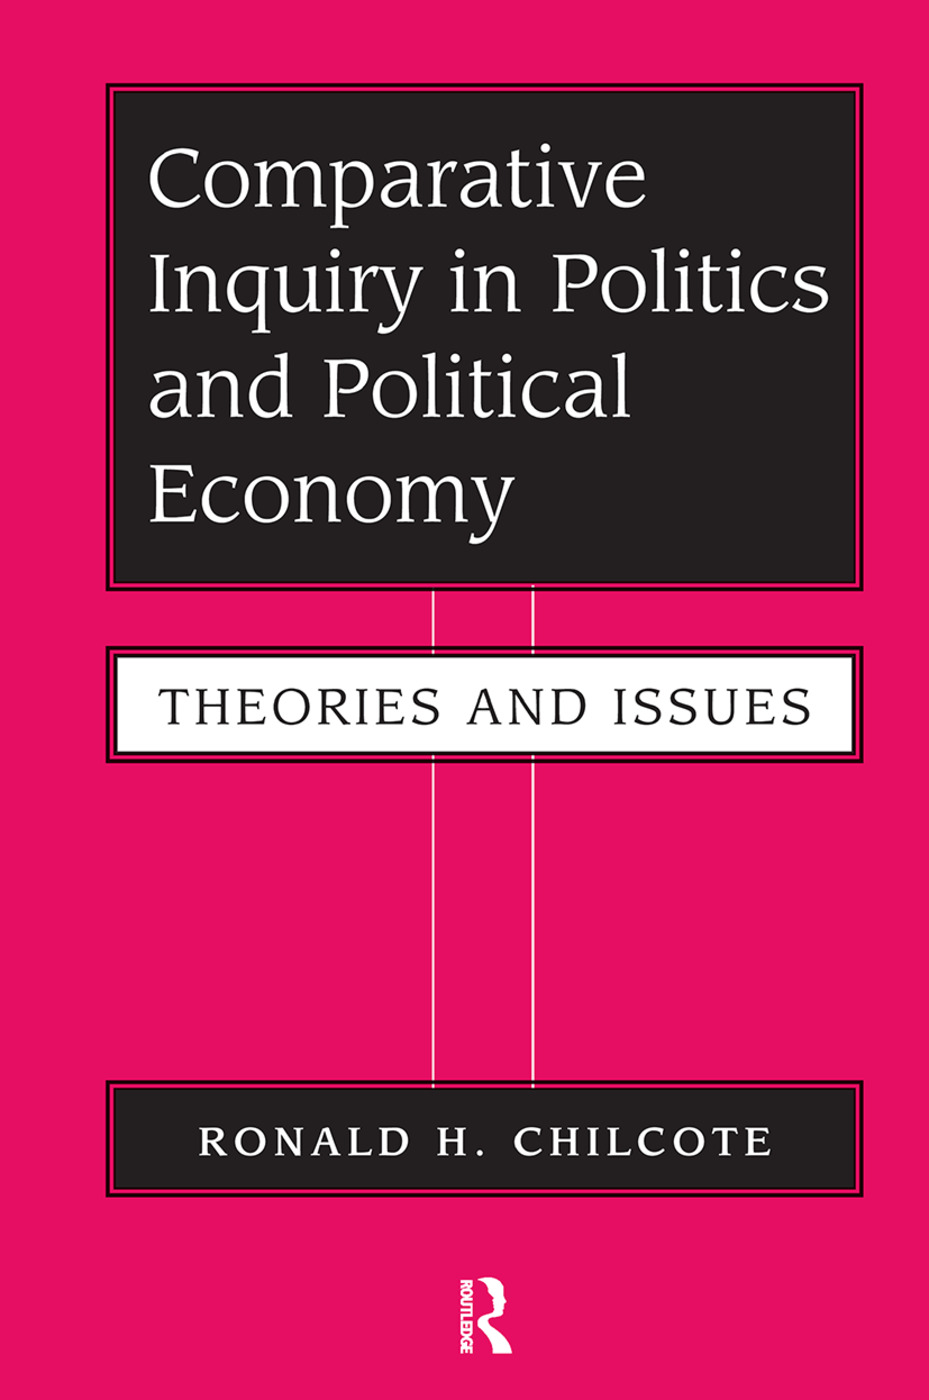 Comparative Inquiry In Politics And Political Economy: Theories And Issues book cover